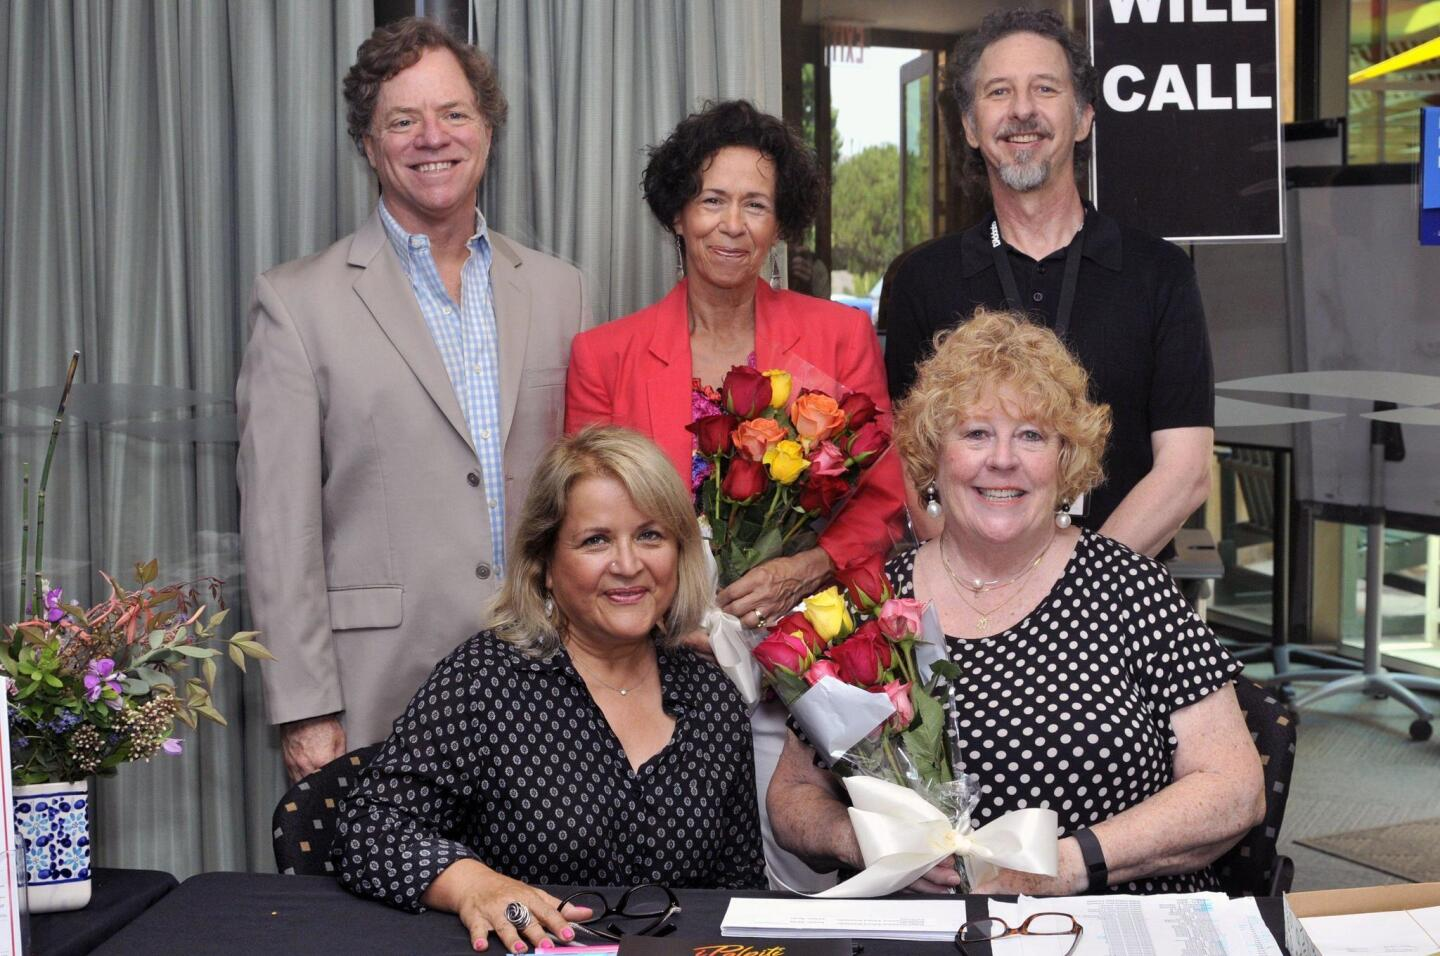 City of Encinitas' Arts Administrator Jim Gilliam, Assistant Arts Administrator Cheryl Ehlers, Eduard Schwan (www.SchwanSongs.com). Front row: Encinitas Friends of the Arts President/musician host Naimeh Tanha Woodward, Encinitas Commission for the Arts Chair Judy Thum